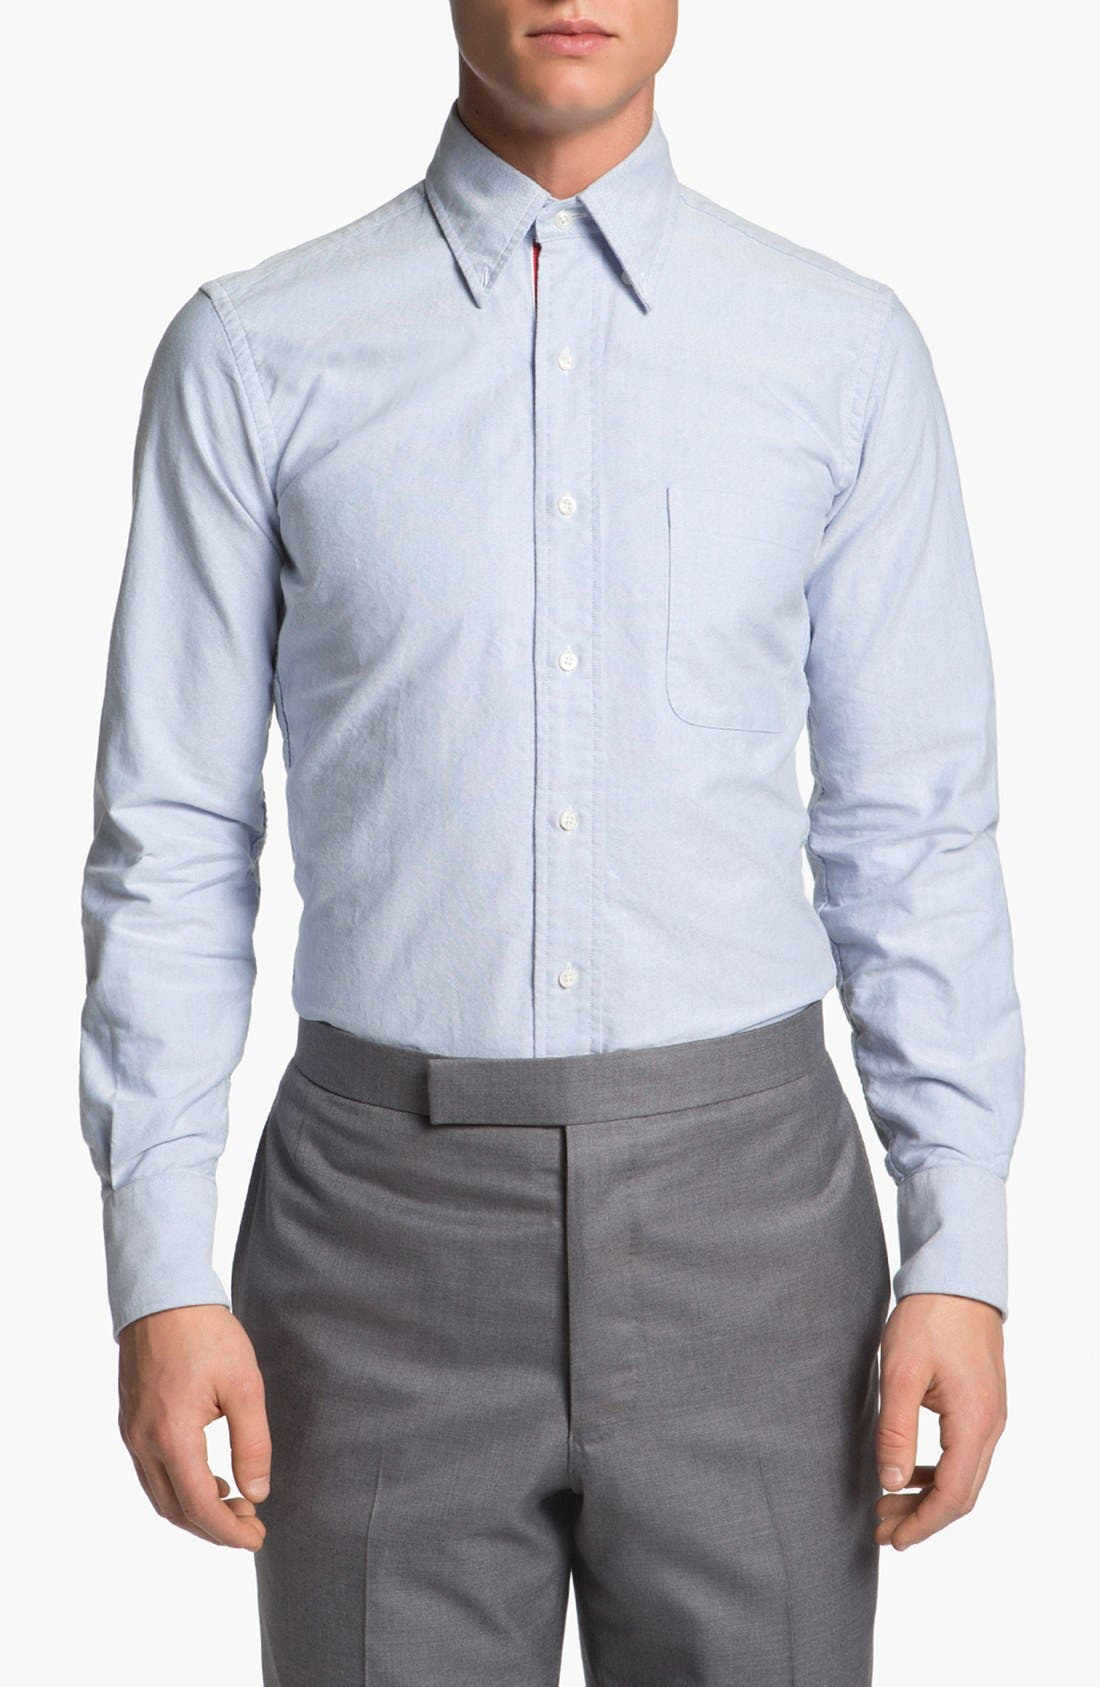 Main Image - Thom Browne Oxford Shirt with Signature Placket